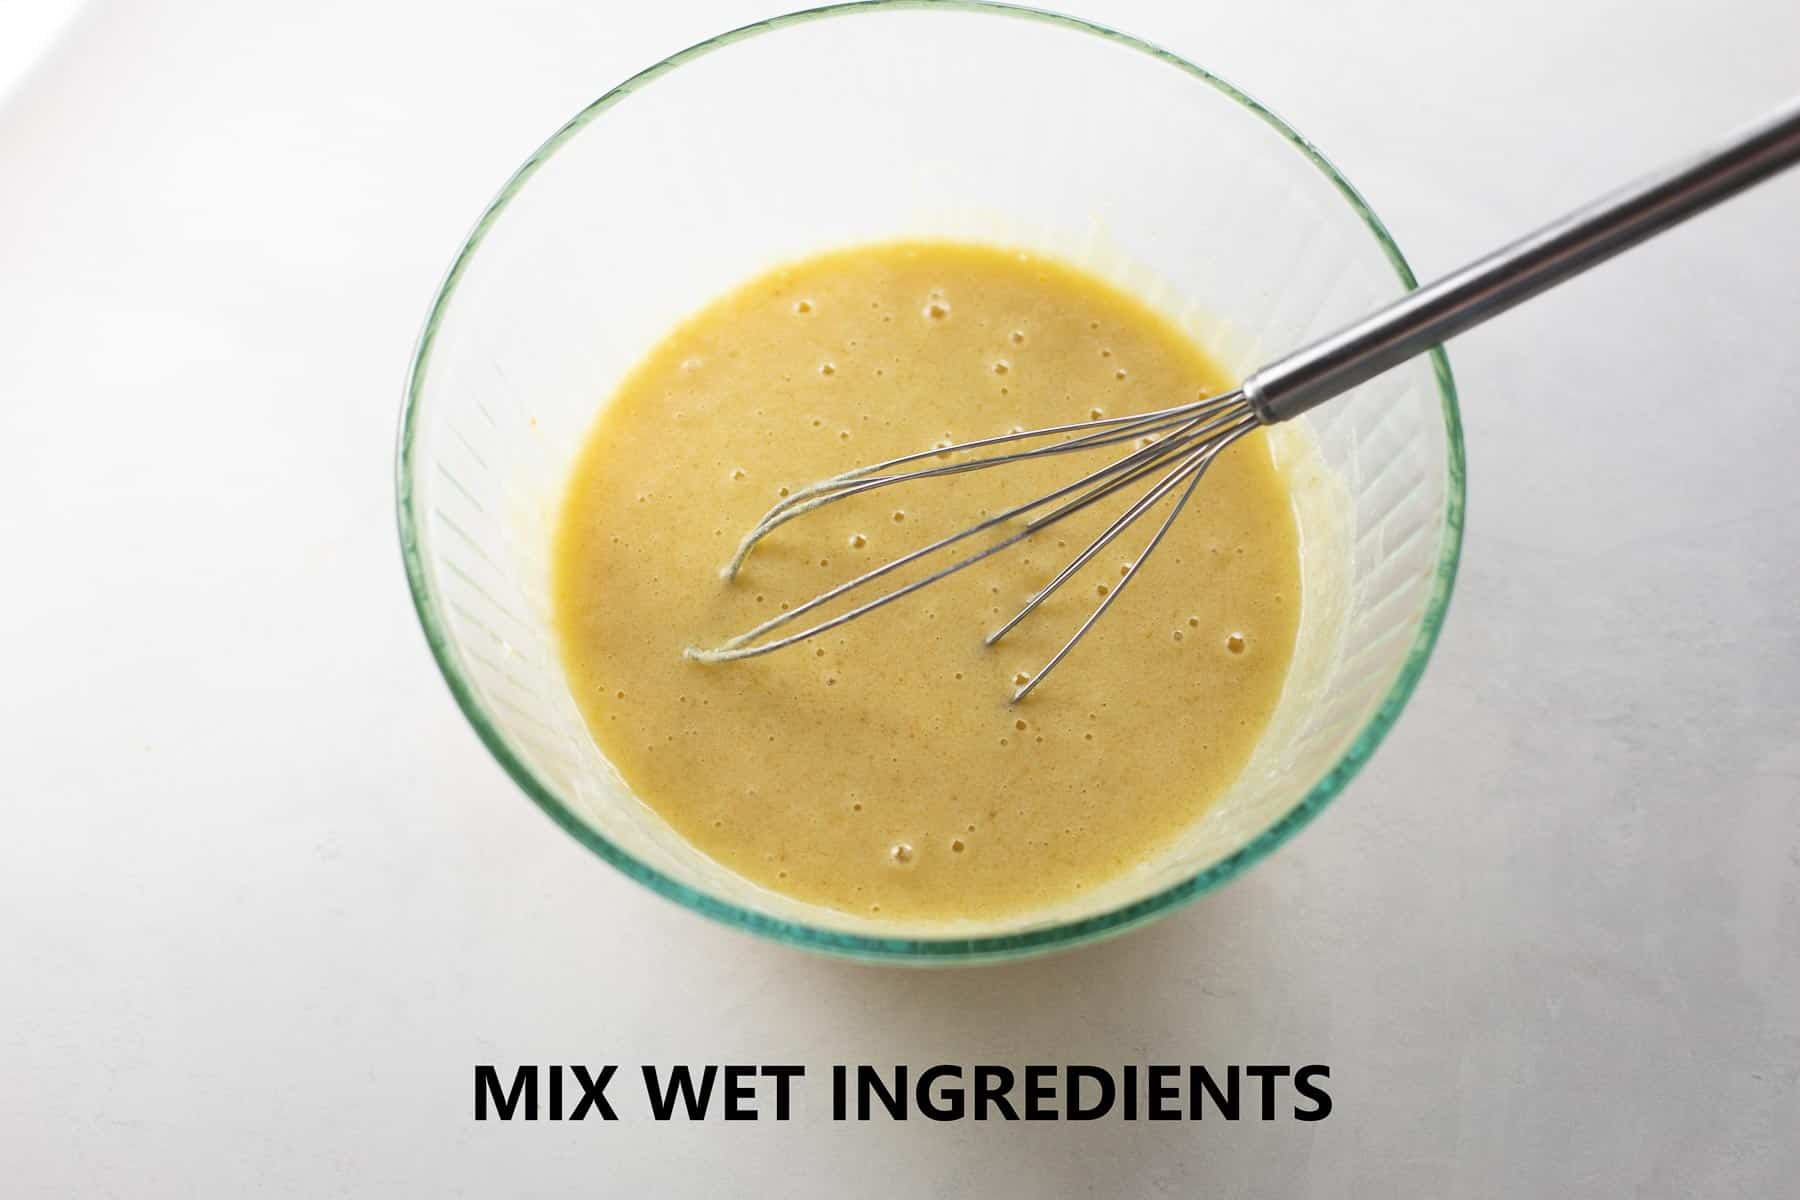 wet ingredients mixed together in glass bowl